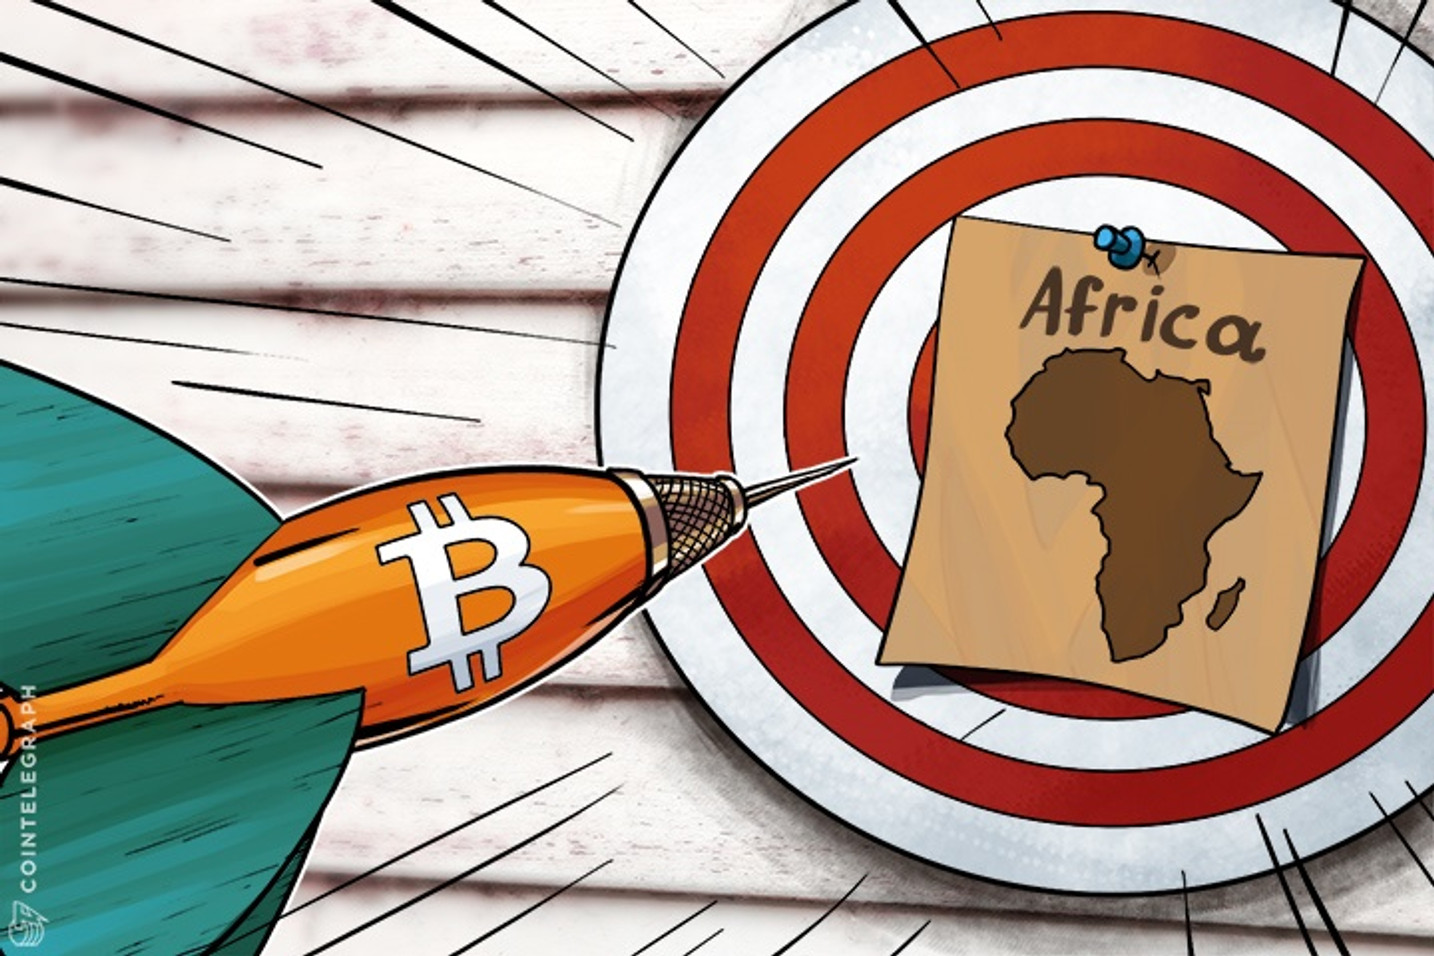 Major Bitcoin Exchanges are Targeting Africa as Next Big Market